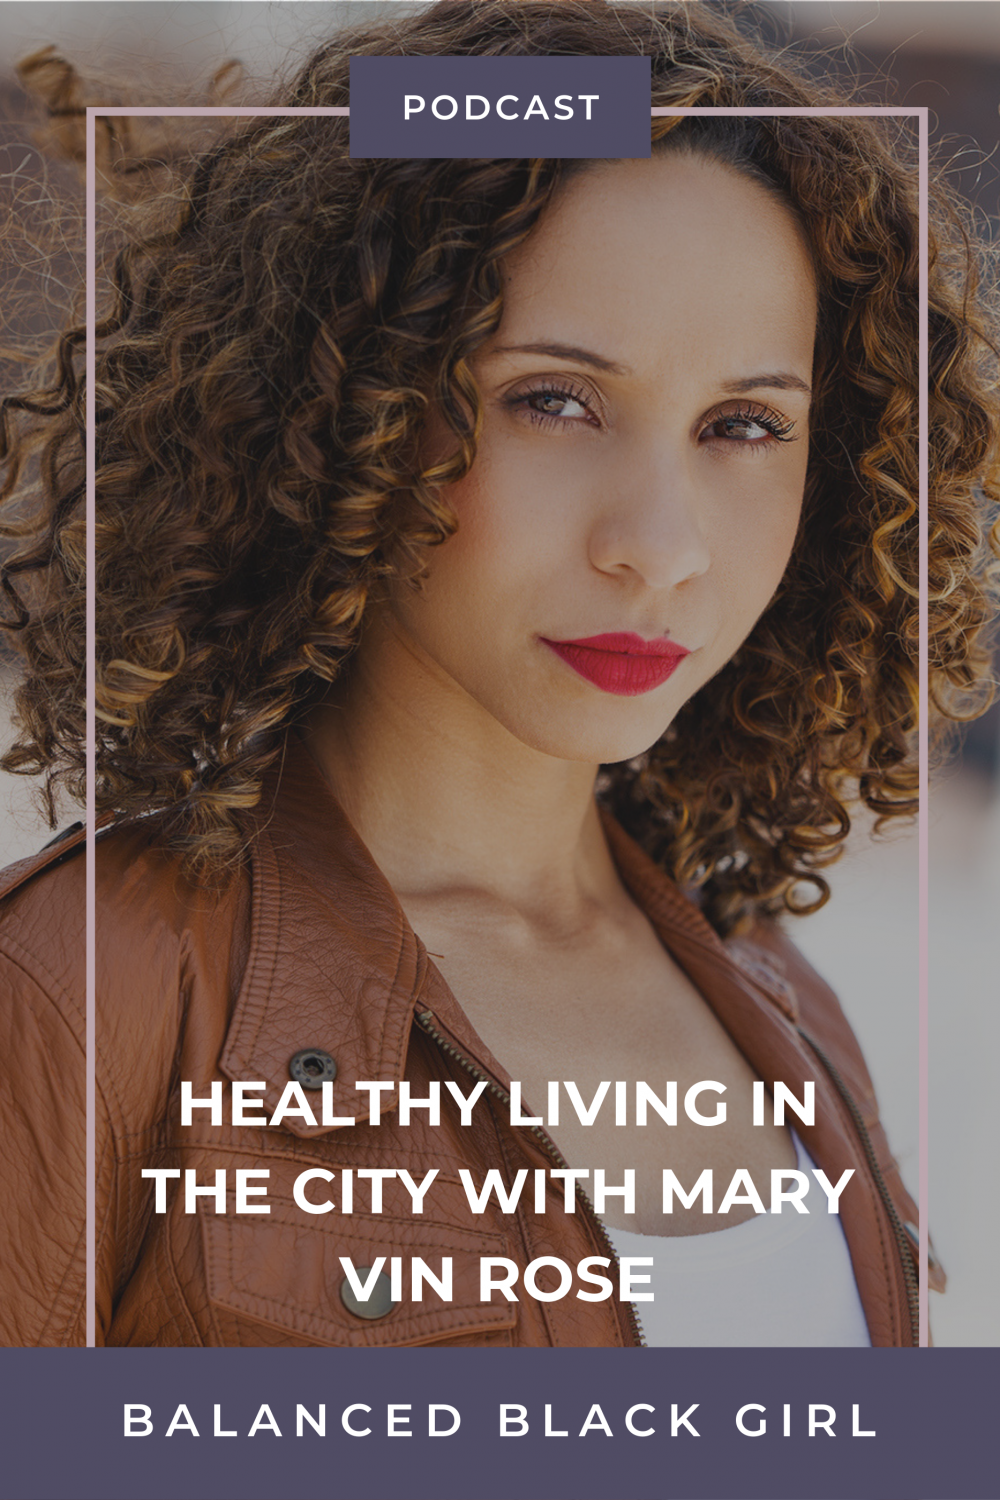 Episode 32: Healthy Living in the City with Mary Vin Rose